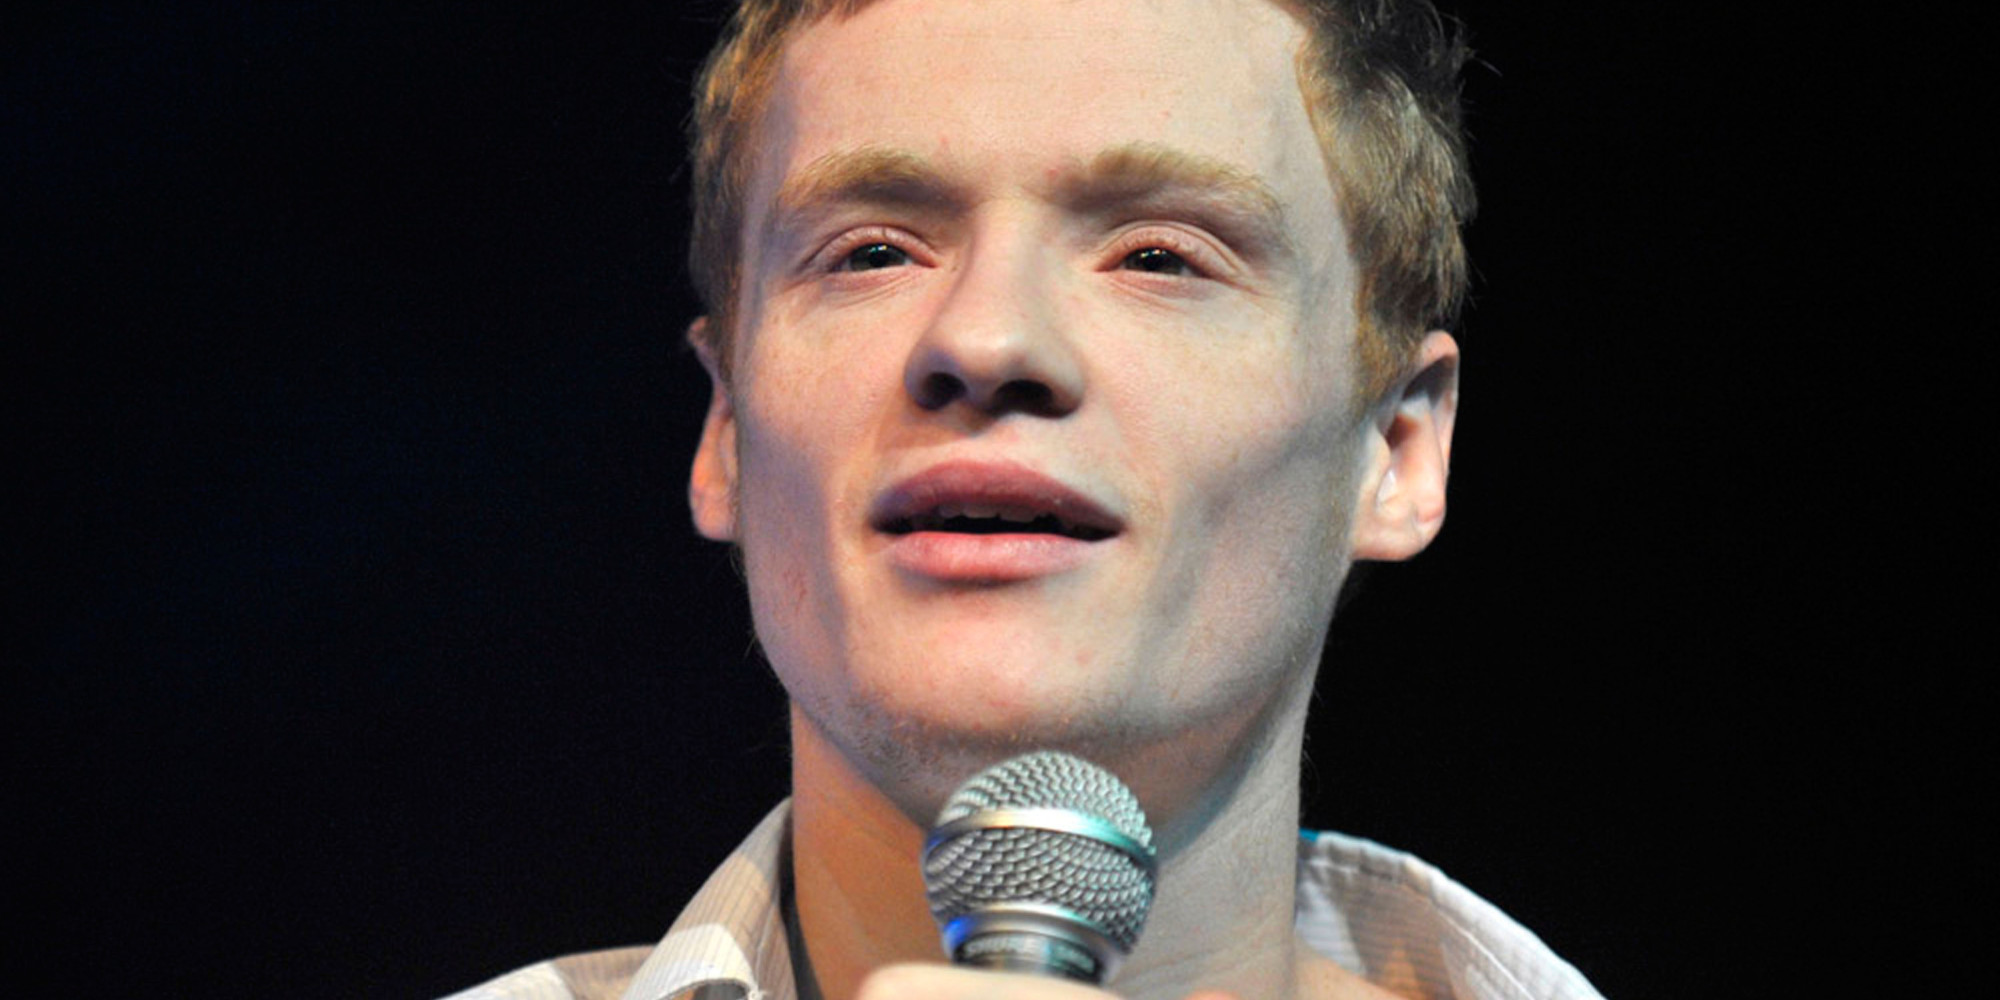 andrew lawrence gay